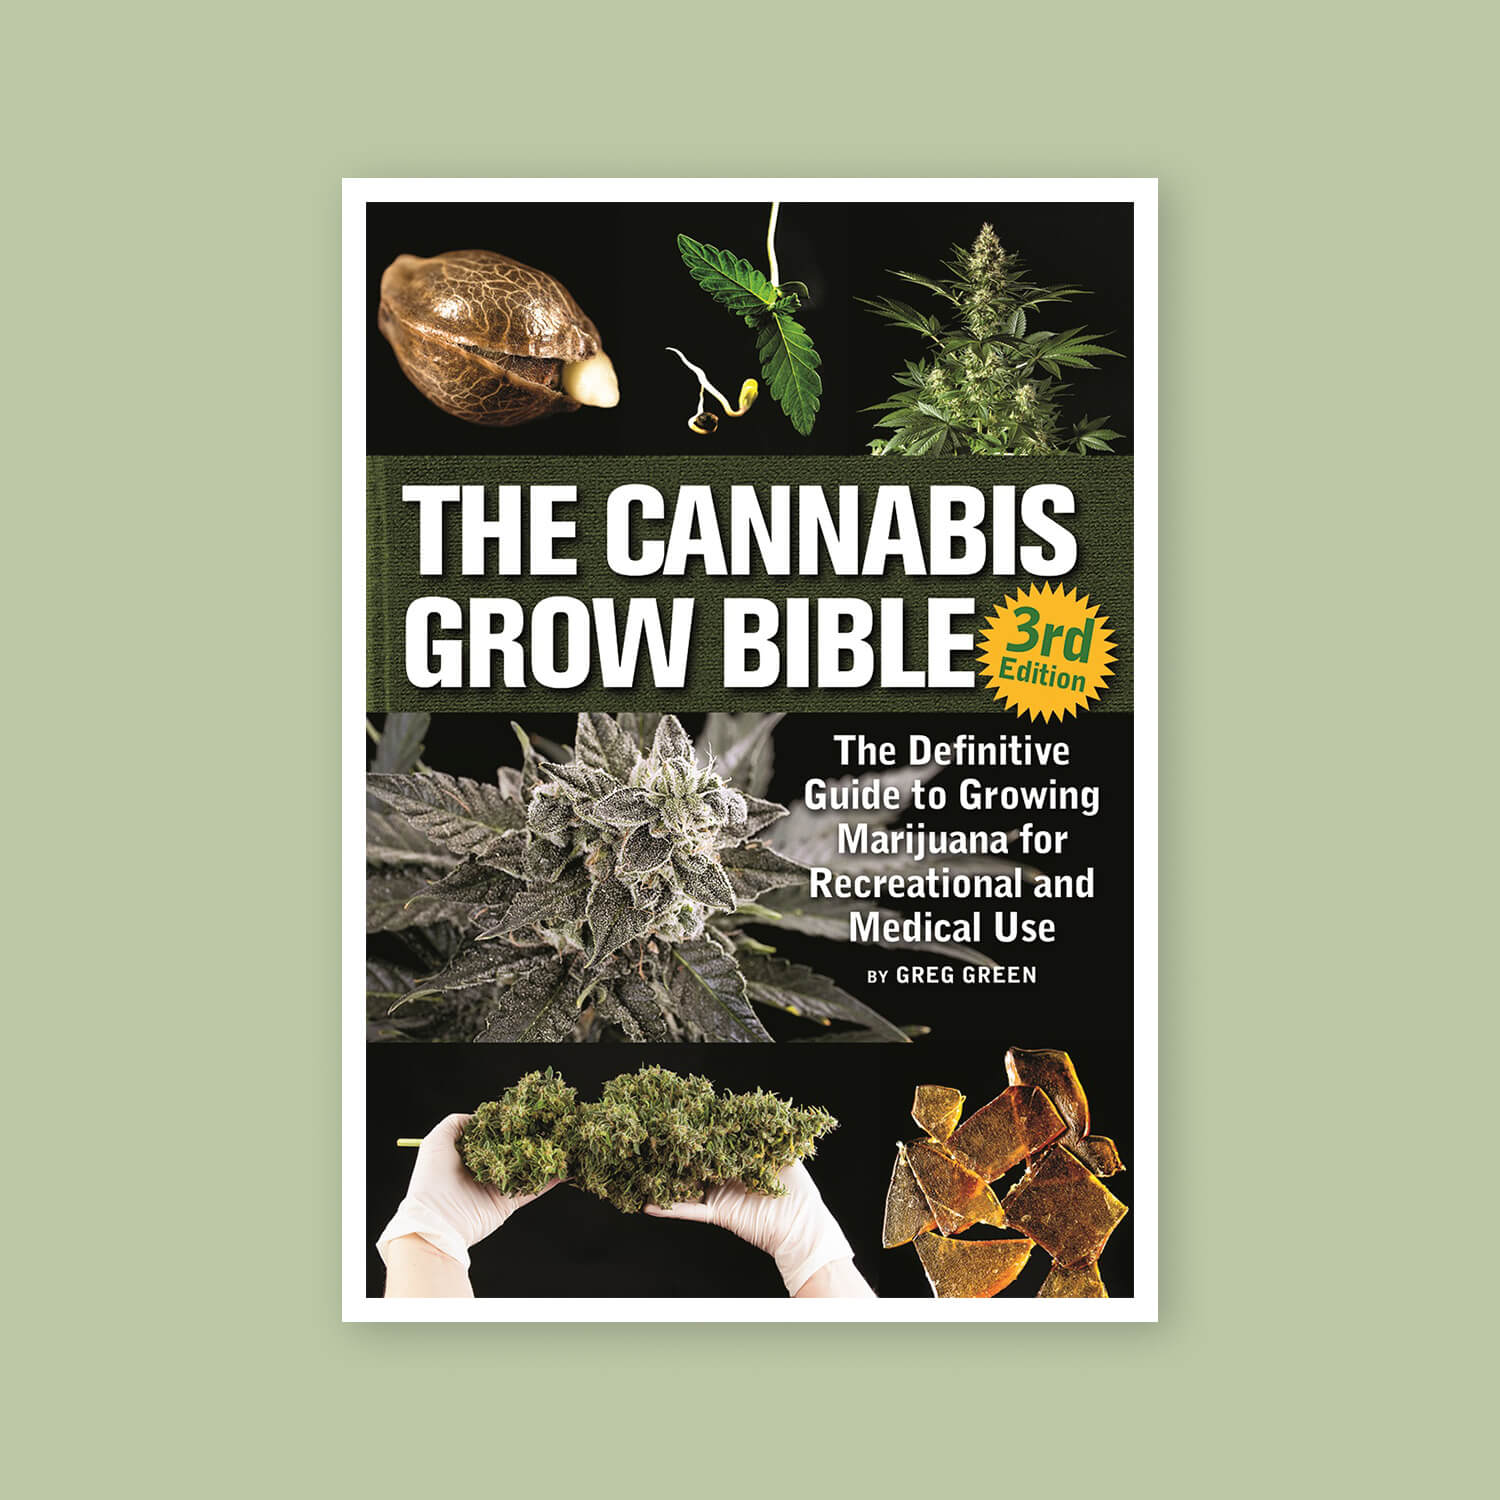 Cannabis Grow Bible - Goldleaf Bookshelf